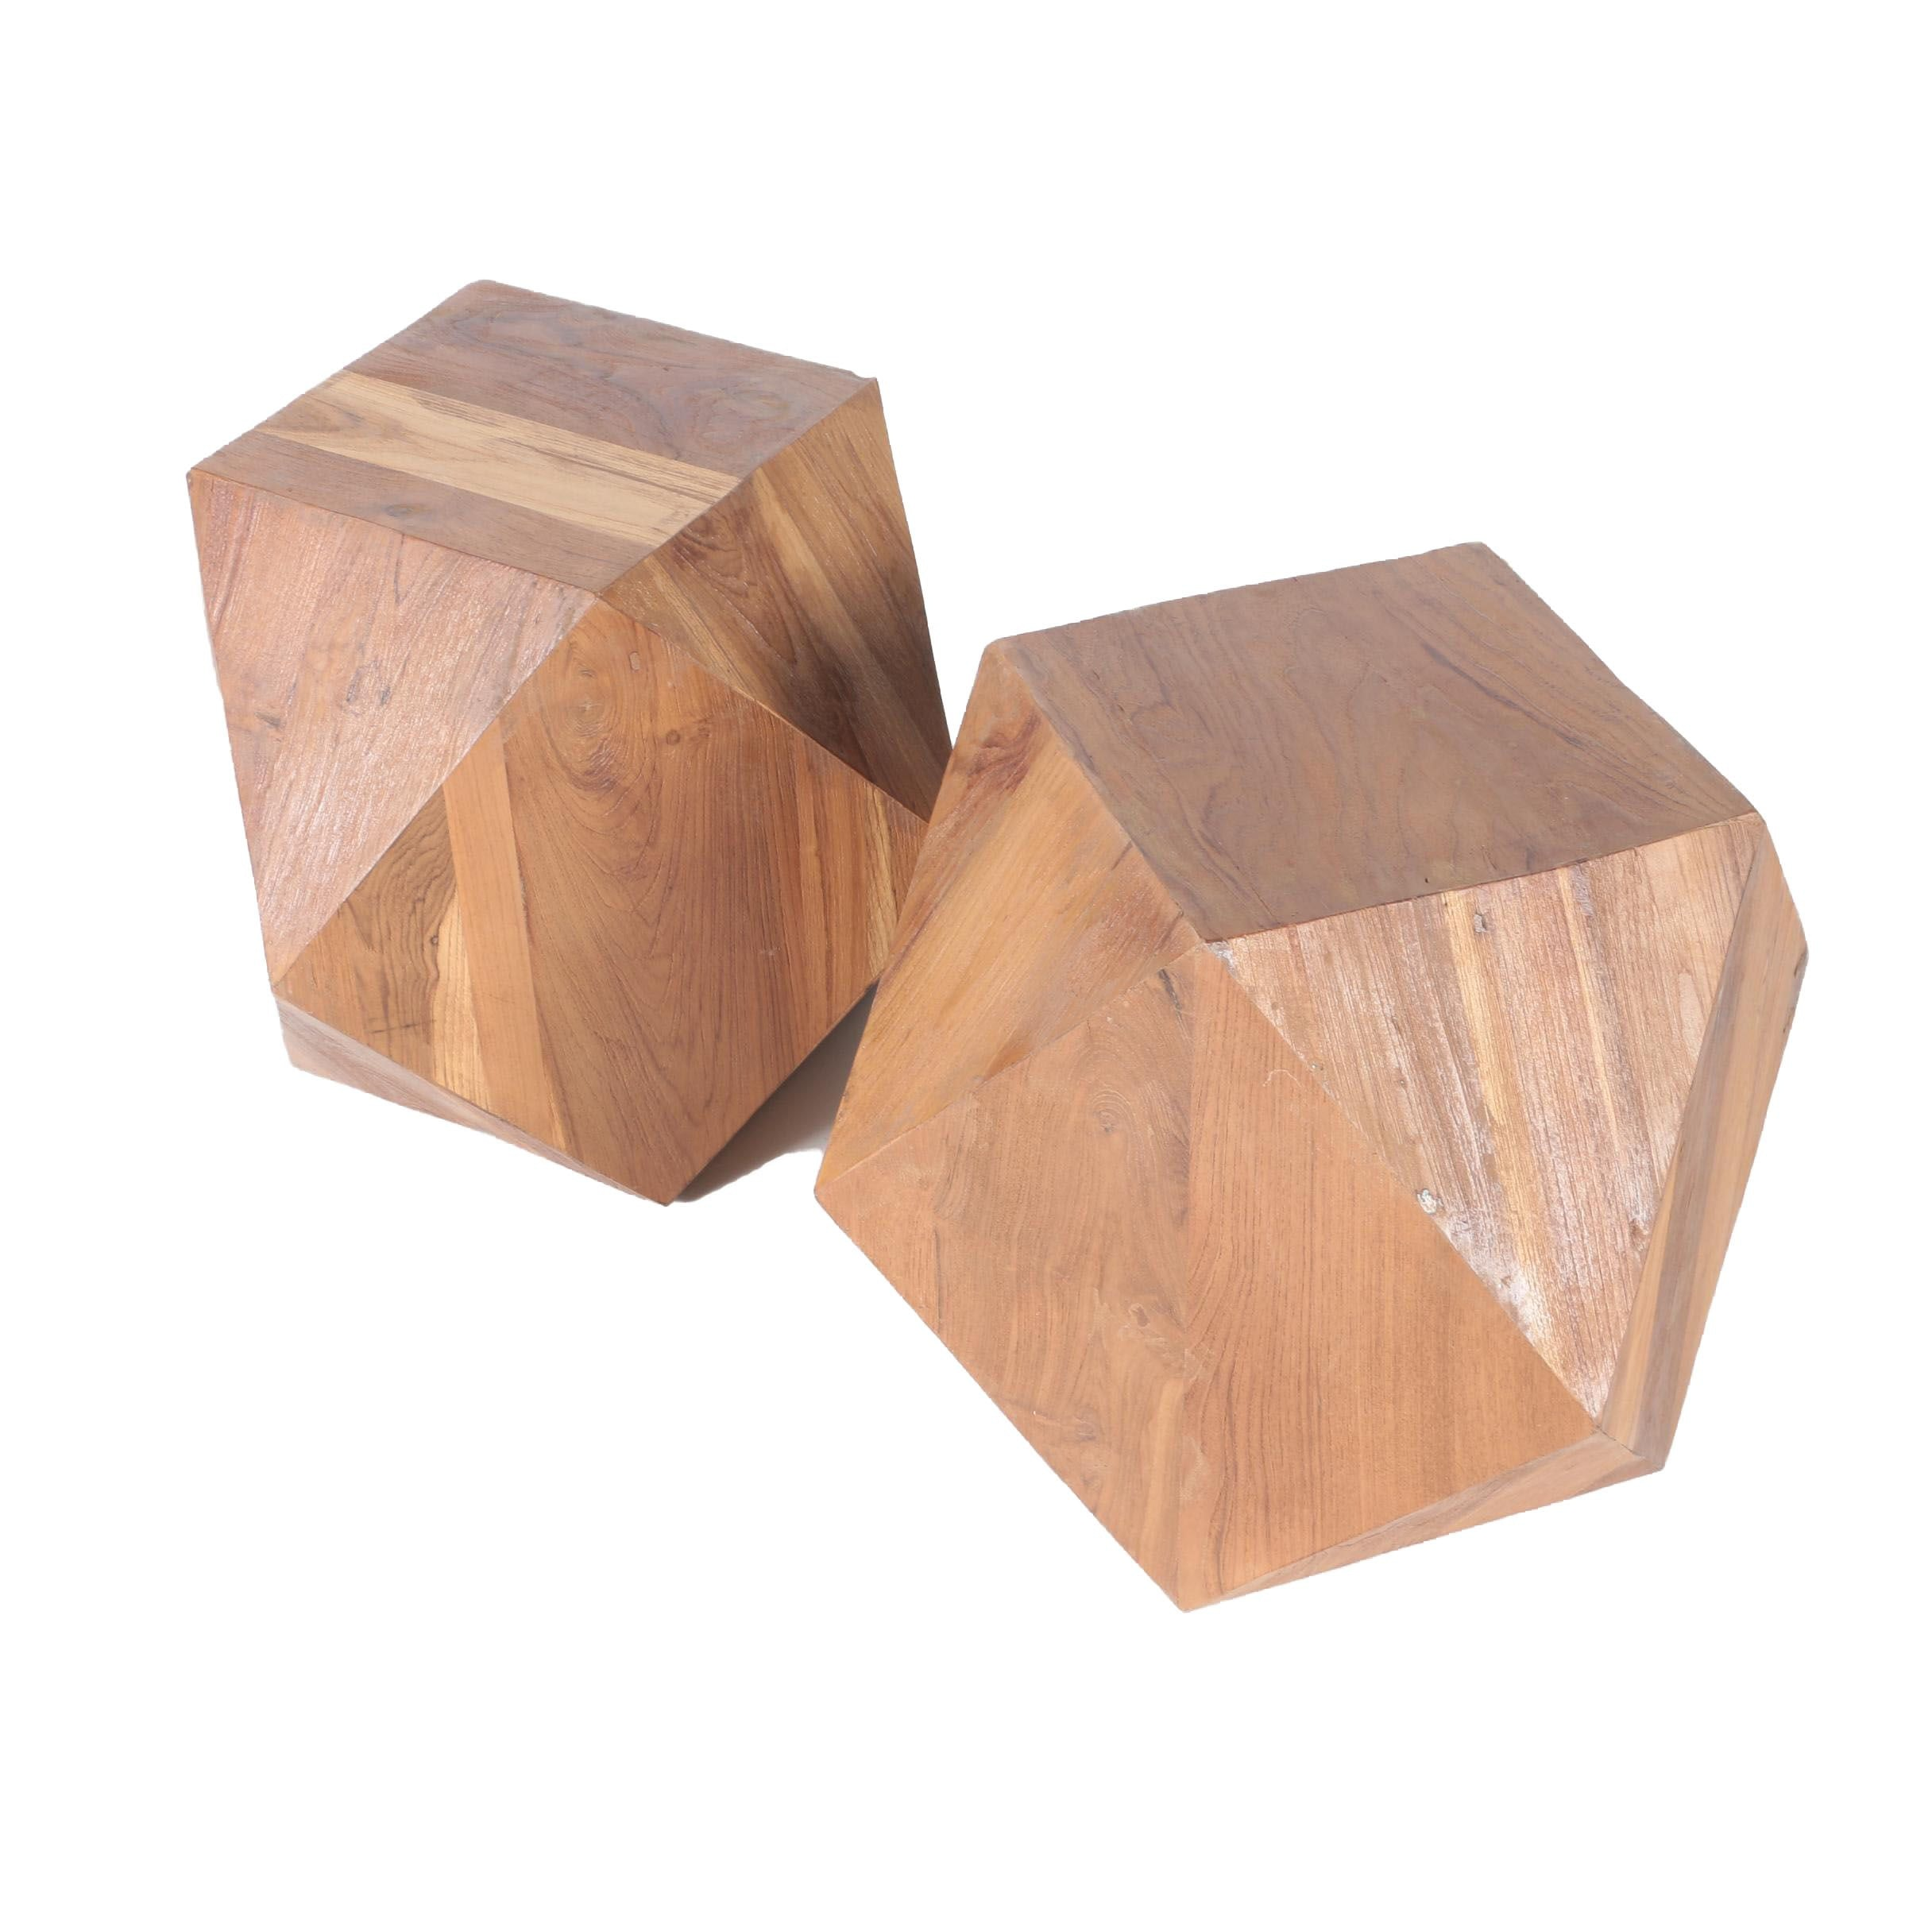 Faceted Wooden Block Side Tables